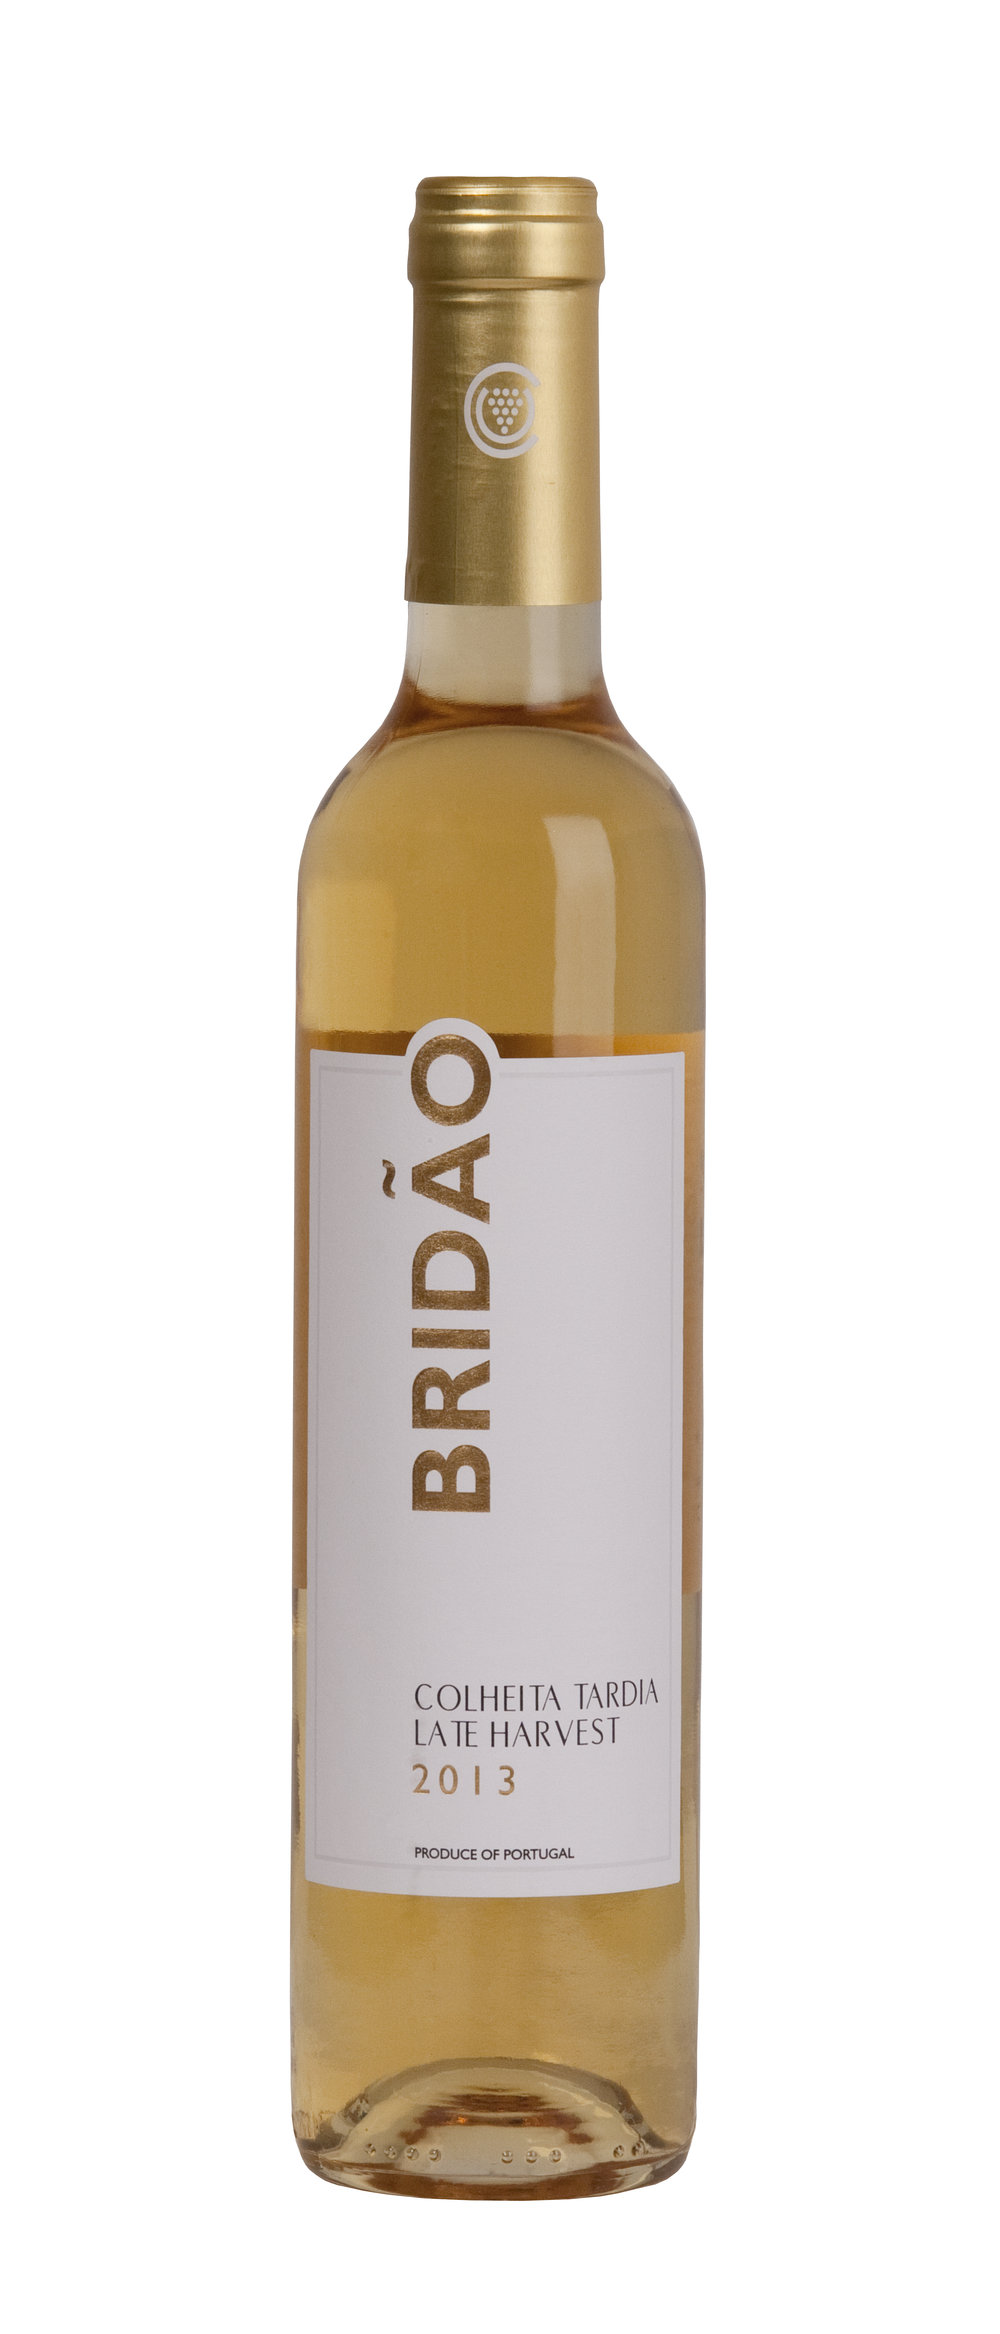 Copy of BRIDÃO LATE HARVEST